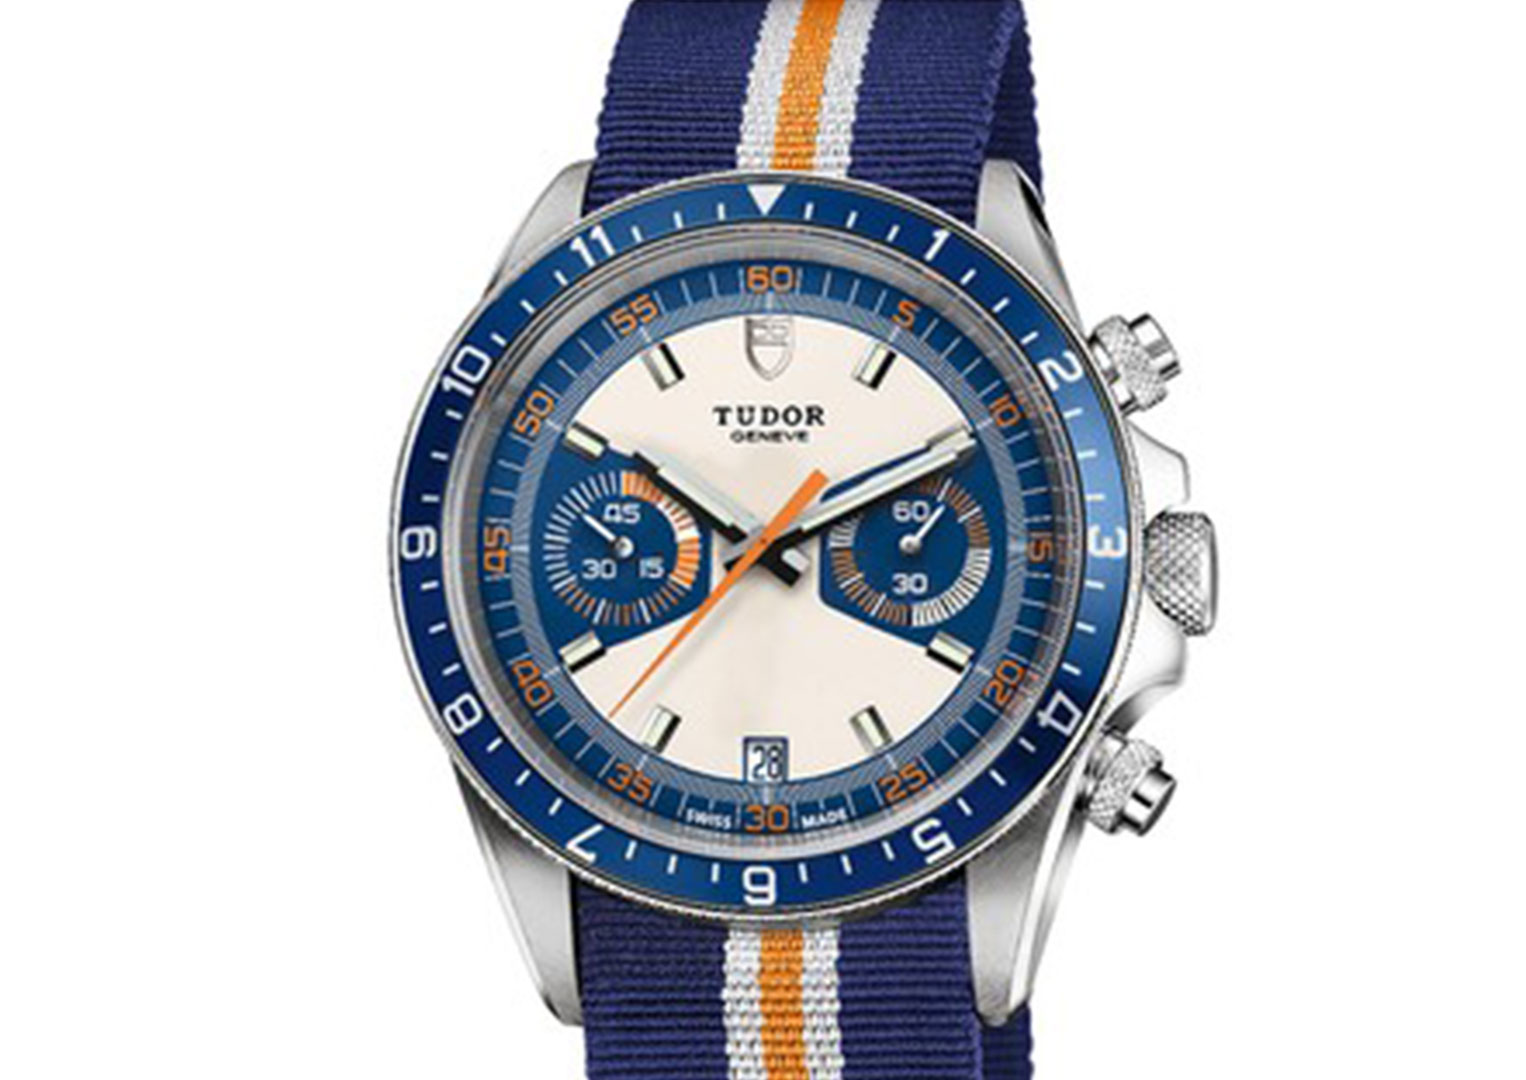 An Oyster Date Chronograph, later re-issued as the Heritage Chrono Blue